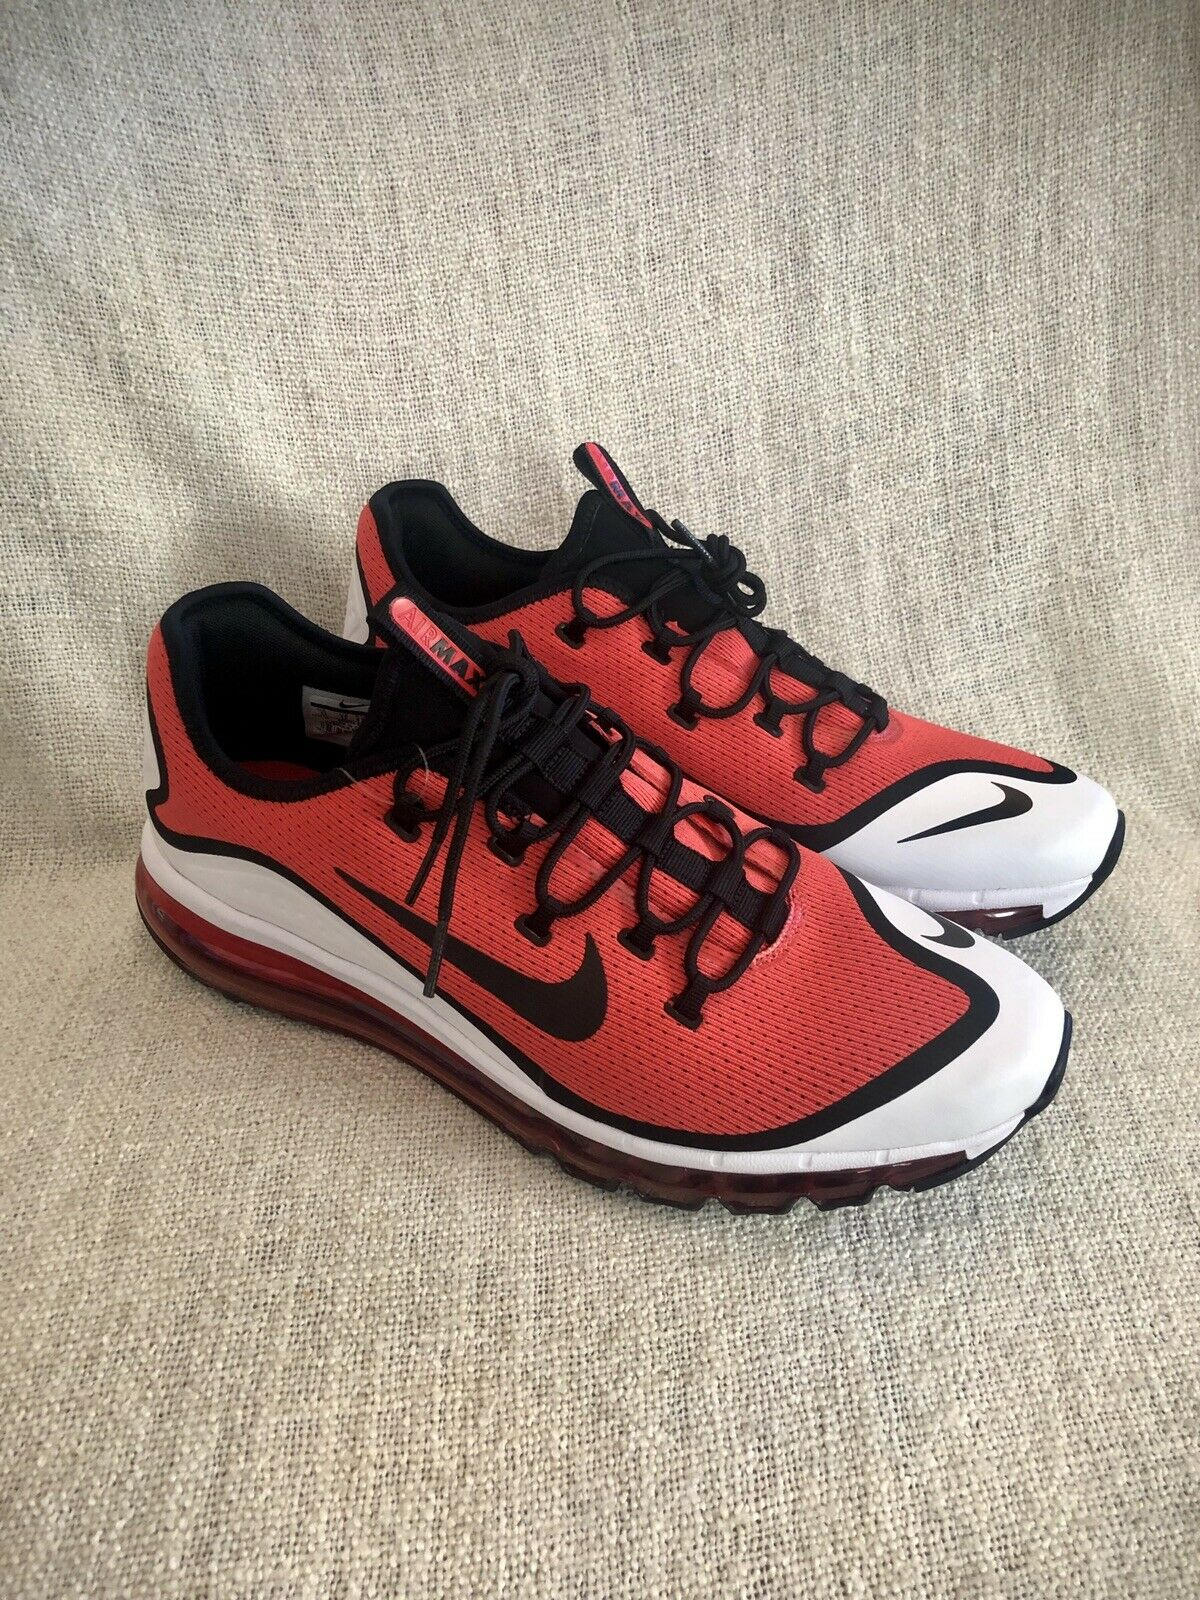 Nike Air Max More Habablack Red Black White AR1944 600  Men's Size 13